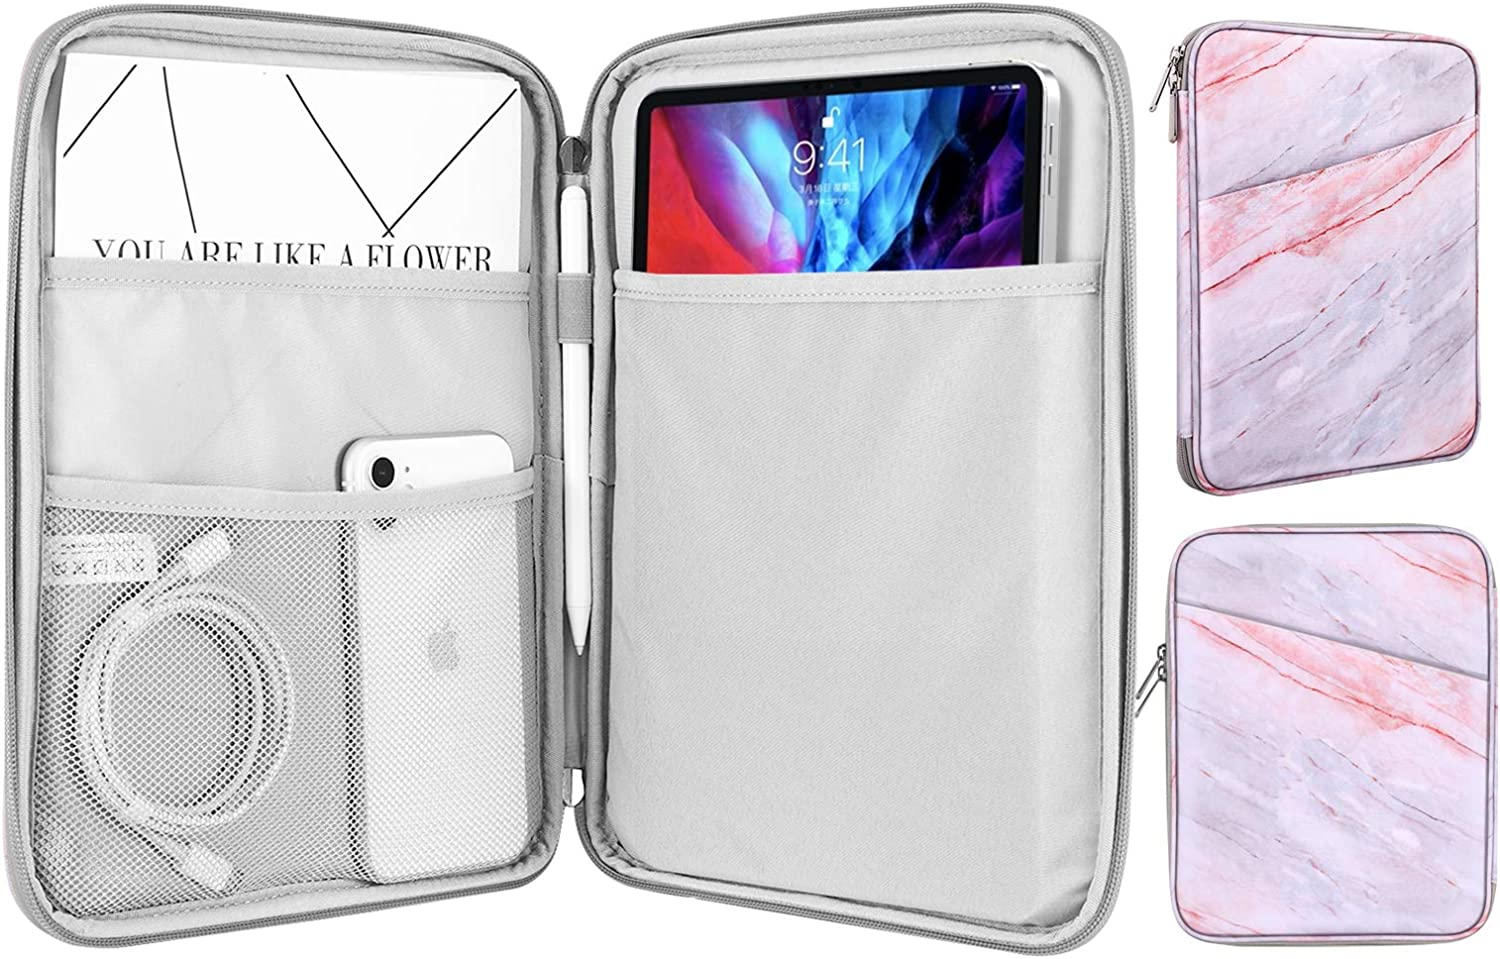 MoKo Sleeve Bag for 9-11 Inch Tablet, Protective Bag Carrying Case with Pocket Fits with iPad Pro 11 2021/2020/2018, iPad 8th 7th Generation 10.2, iPad Air 4 10.9, iPad 9.7, Pink Gray Marble